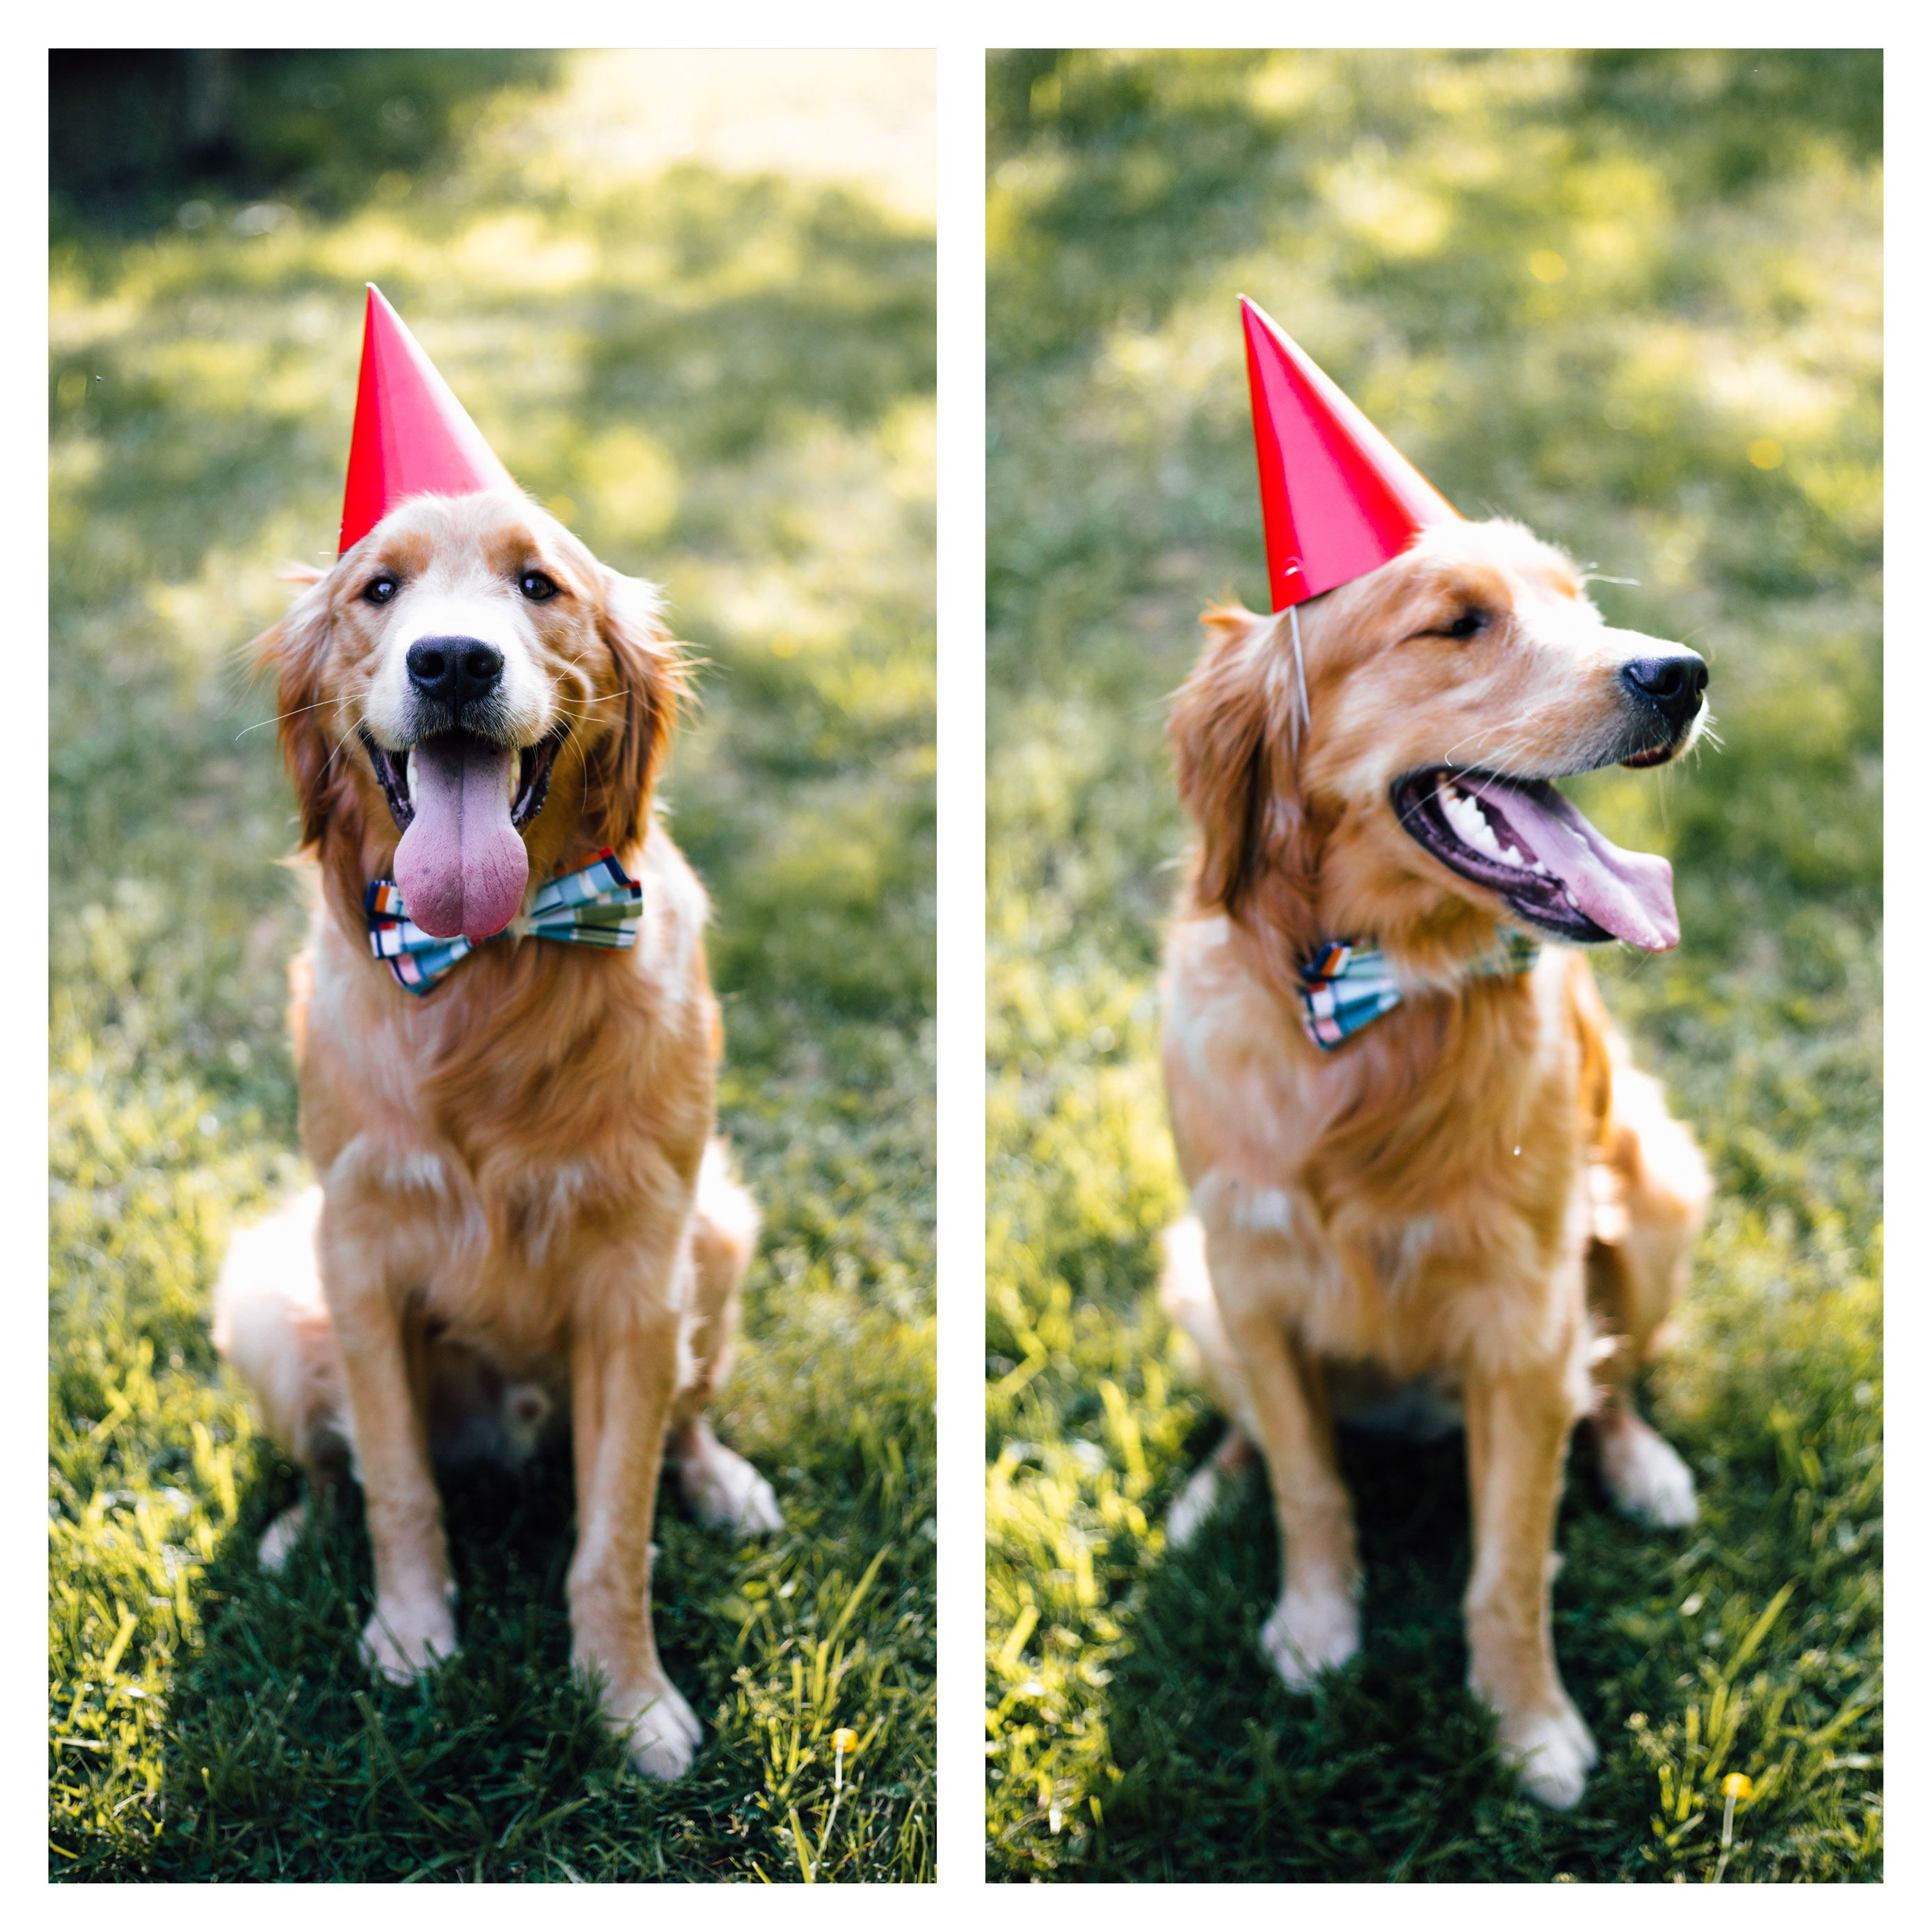 Birthday Party For An Adorable Golden Retriever 10 10 Worth